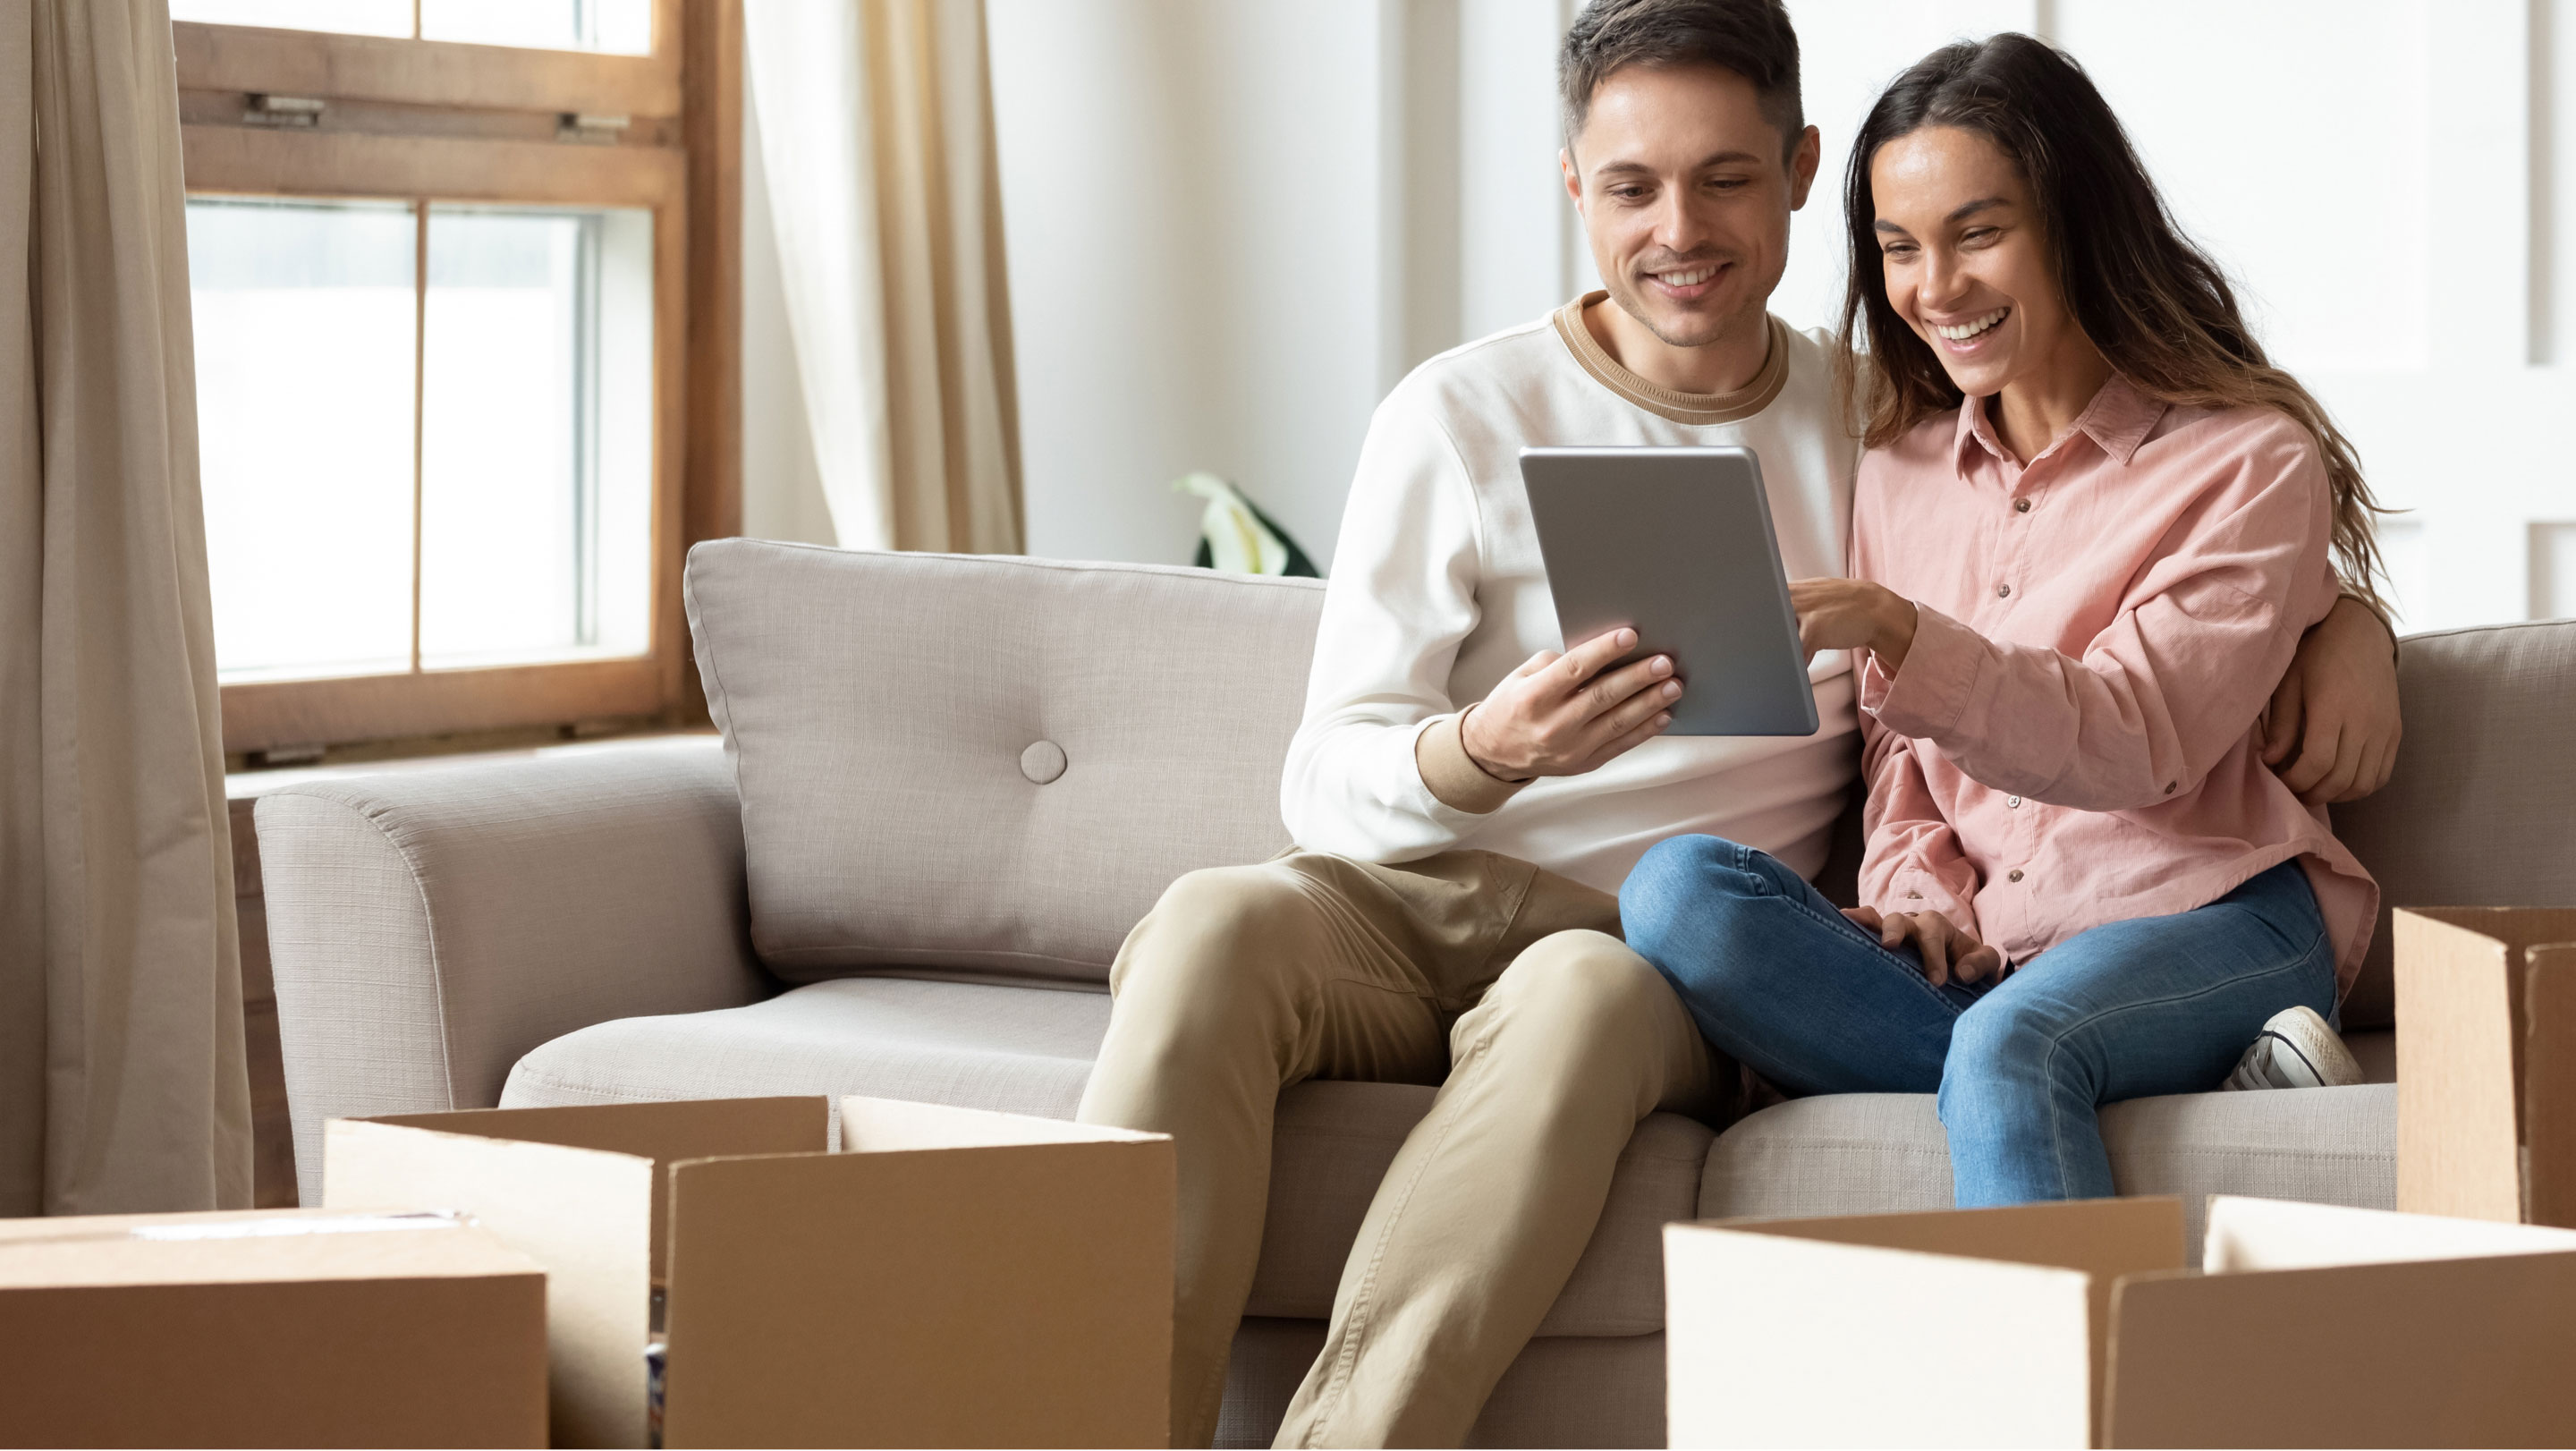 Couple sitting on couch pointing at tablet screen